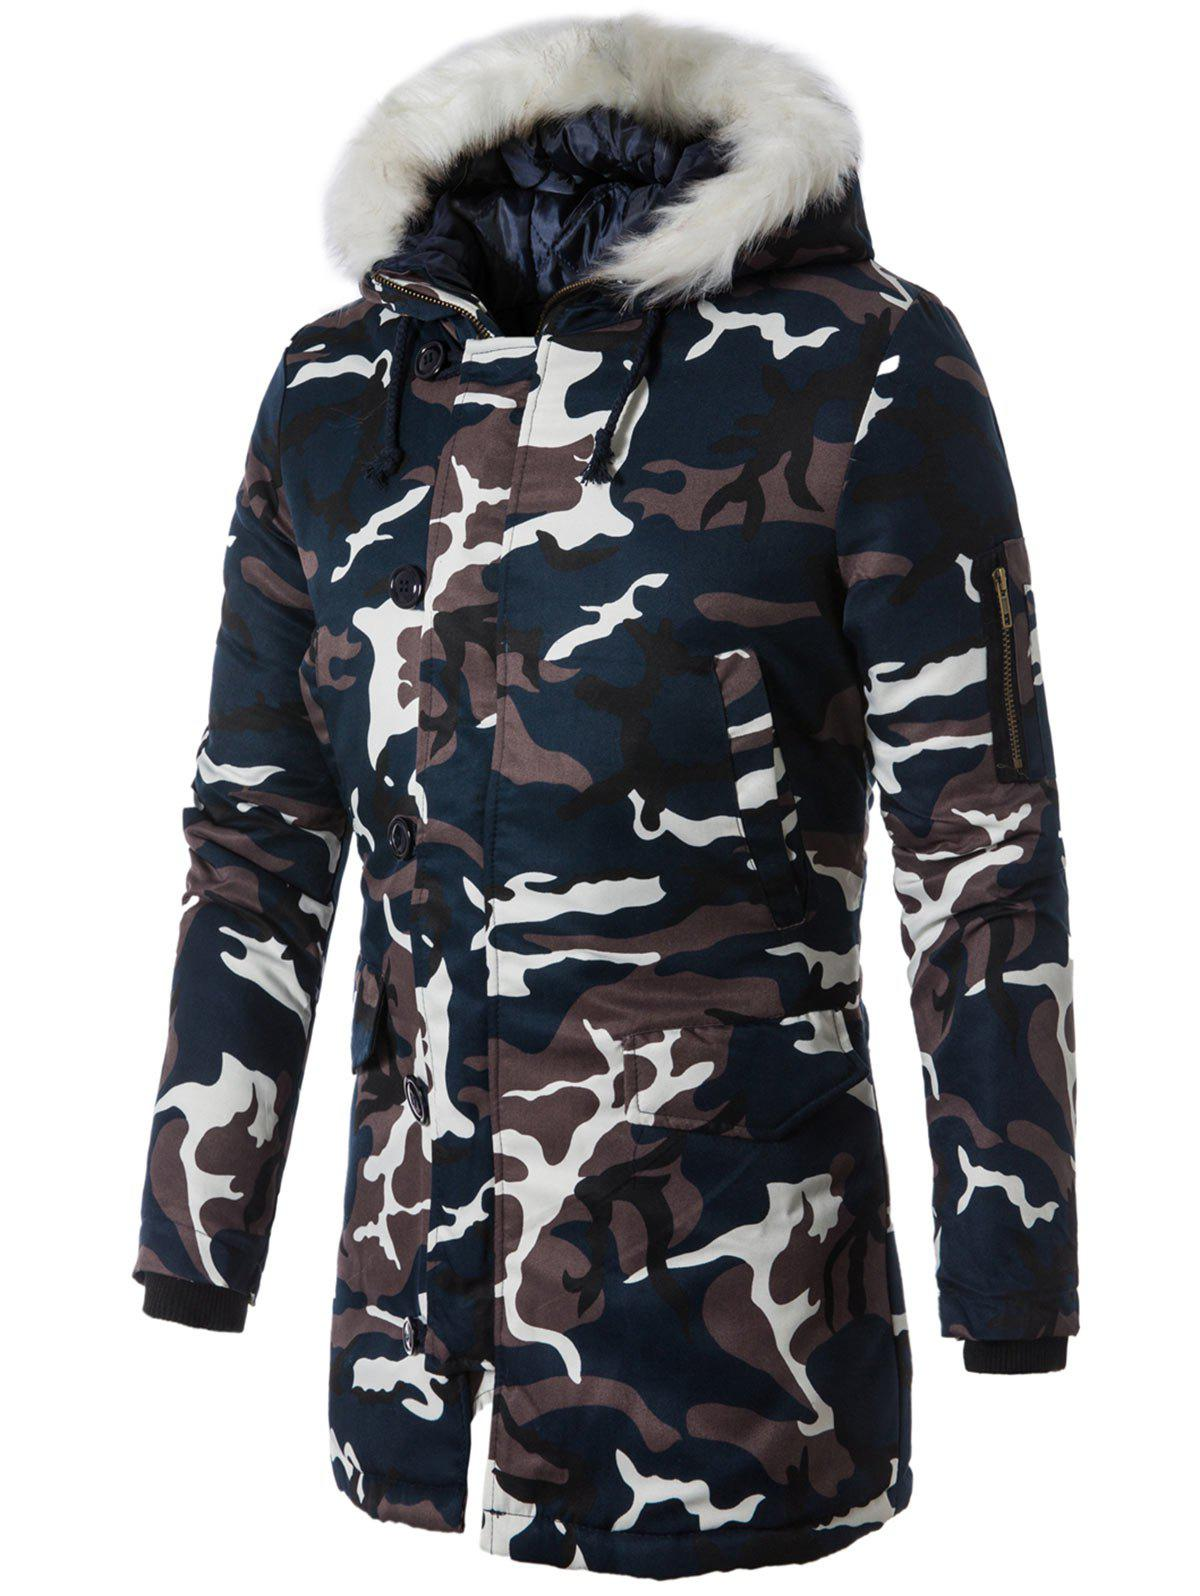 Zip Up Faux Fur Hooded Camo Coat - PURPLISH BLUE 2XL